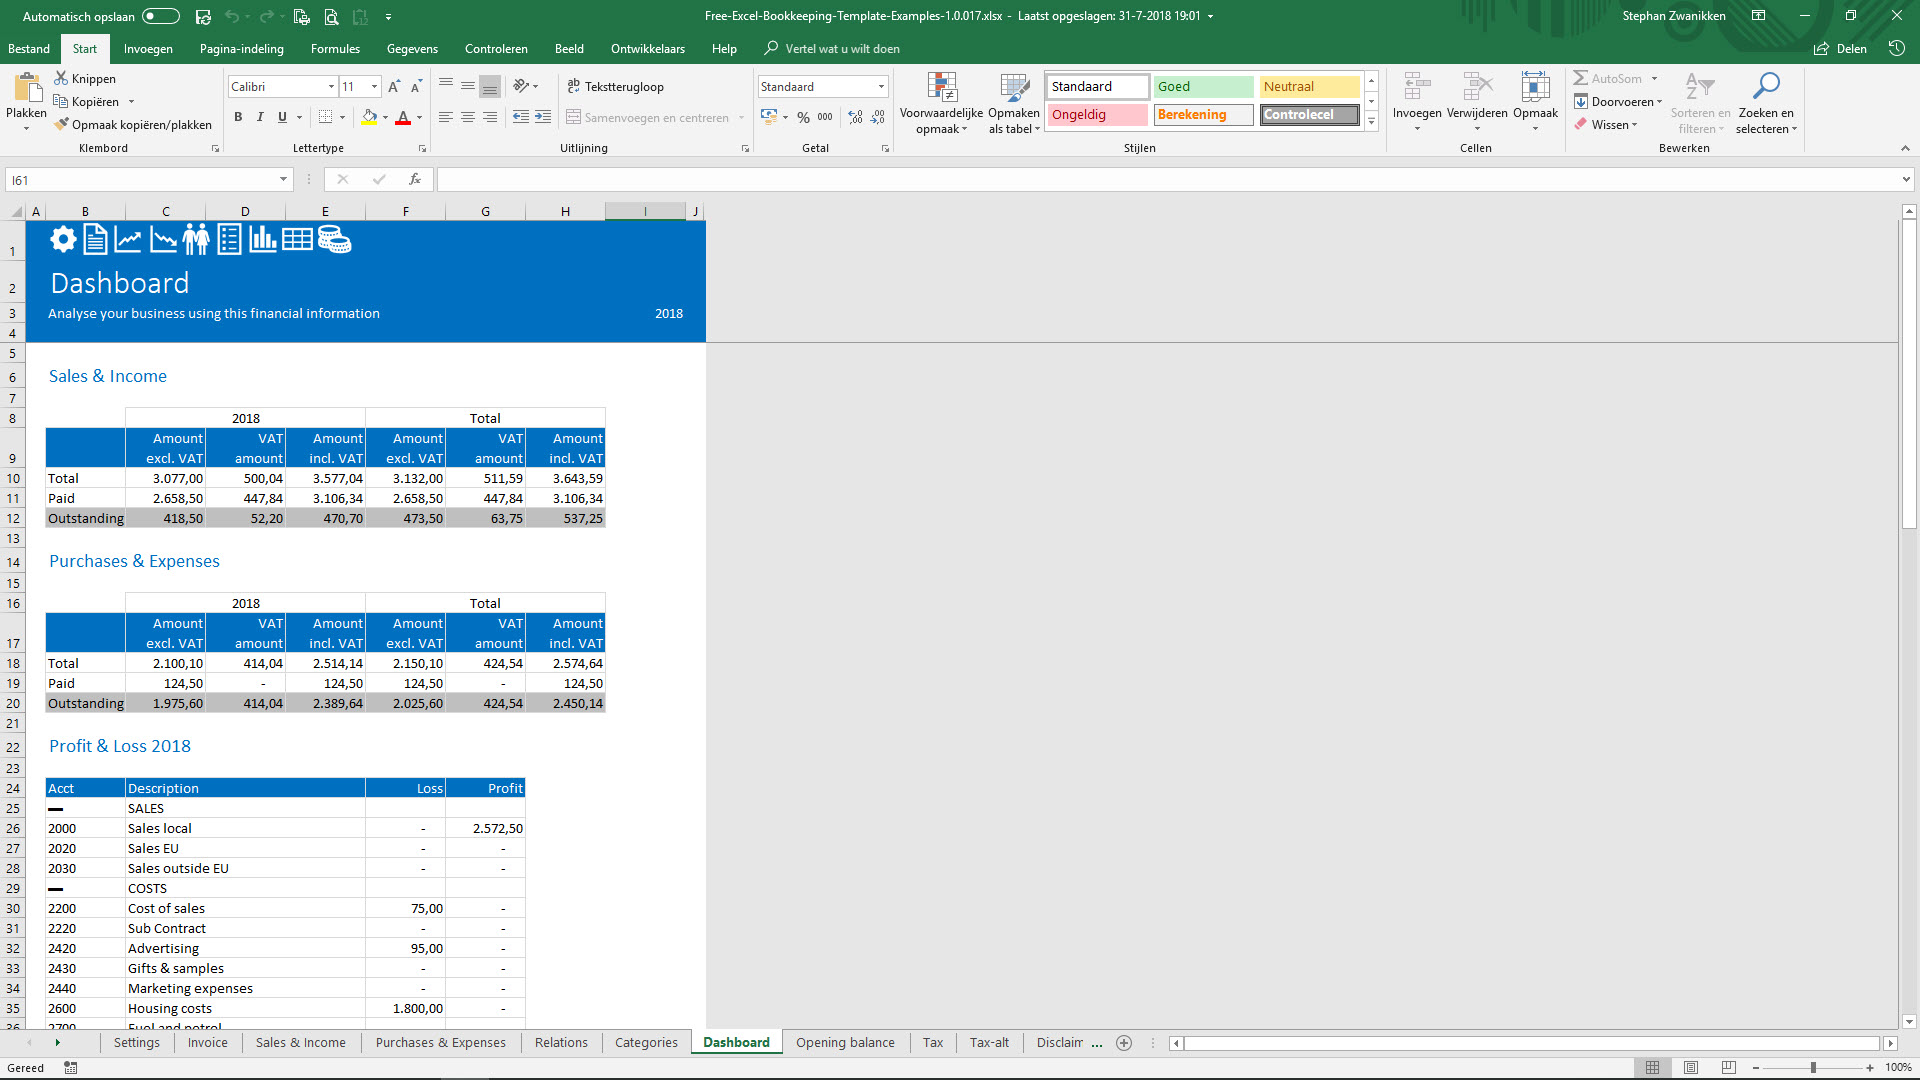 Free Bookkeeping Template View Dashboard